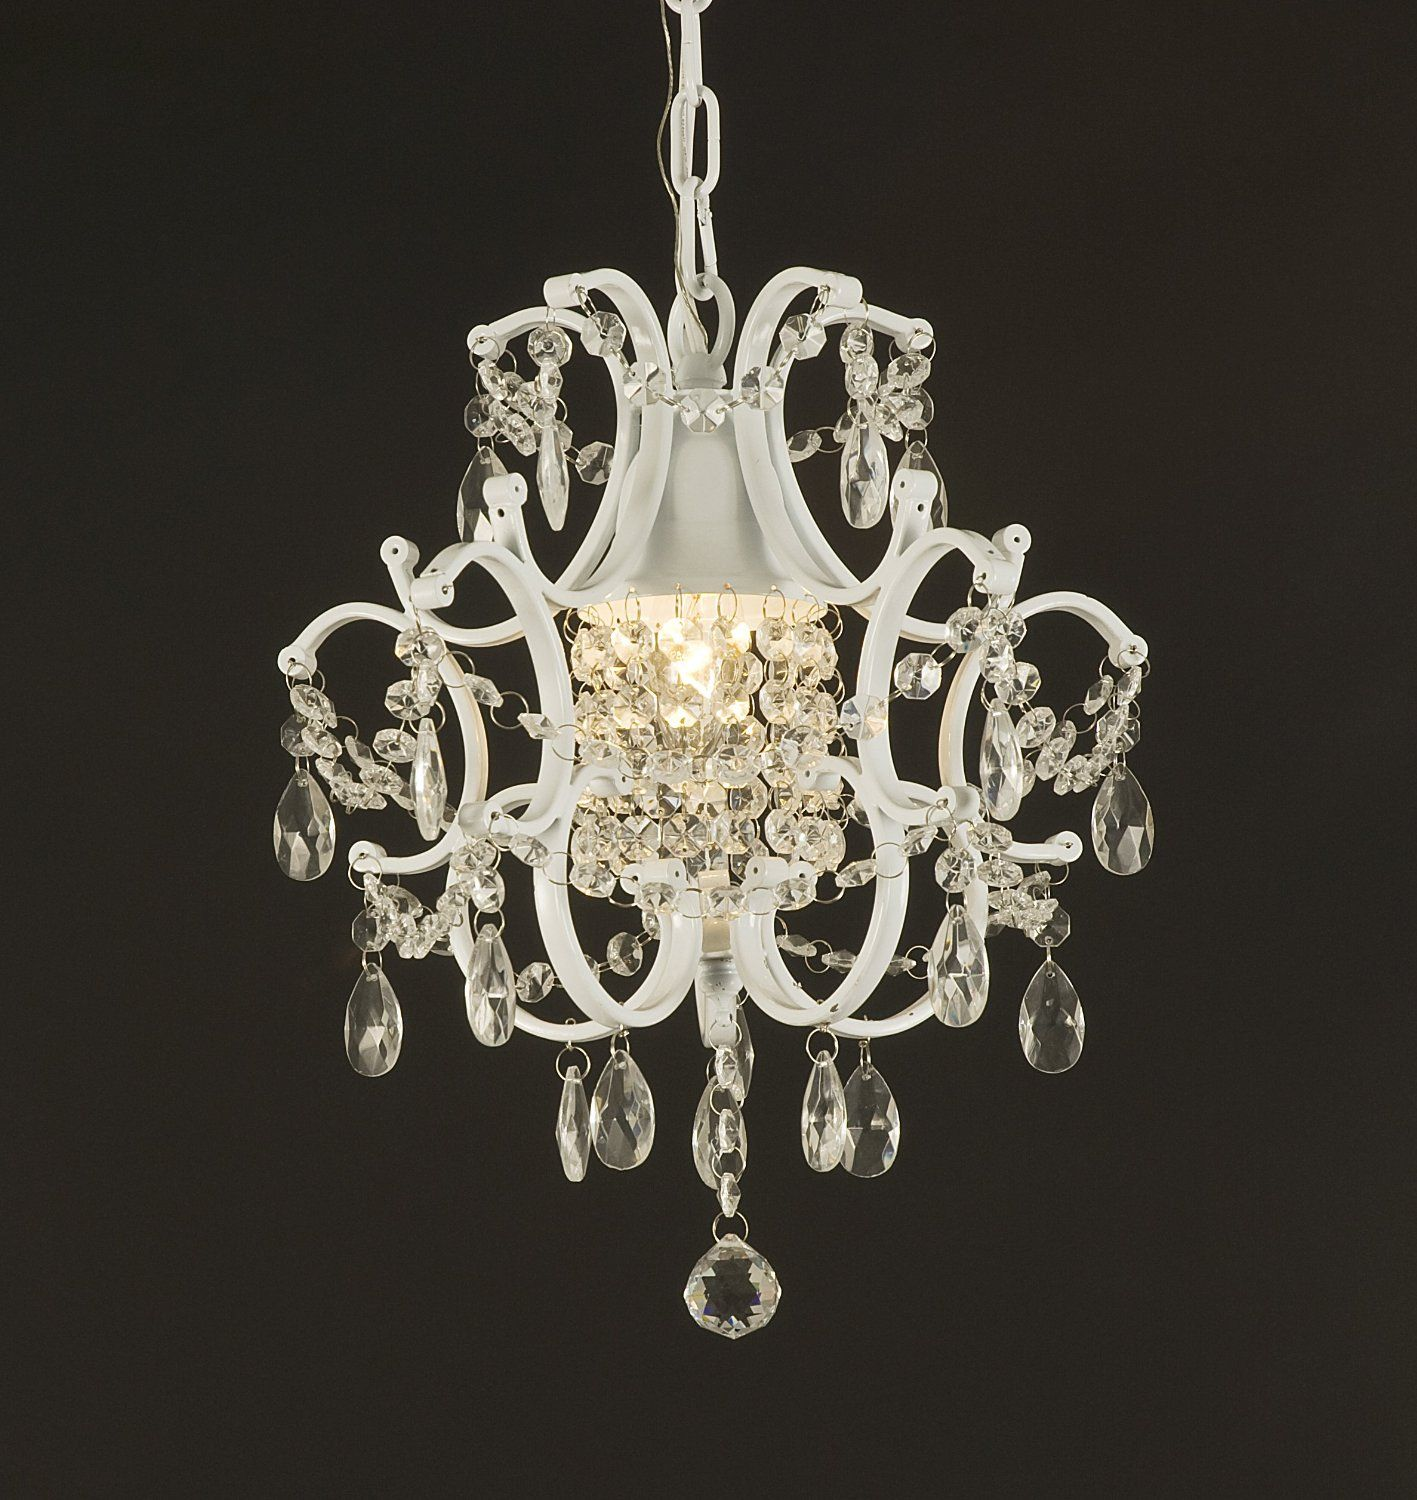 Wrought Iron Crystal Chandelier Lighting Country French White One Light